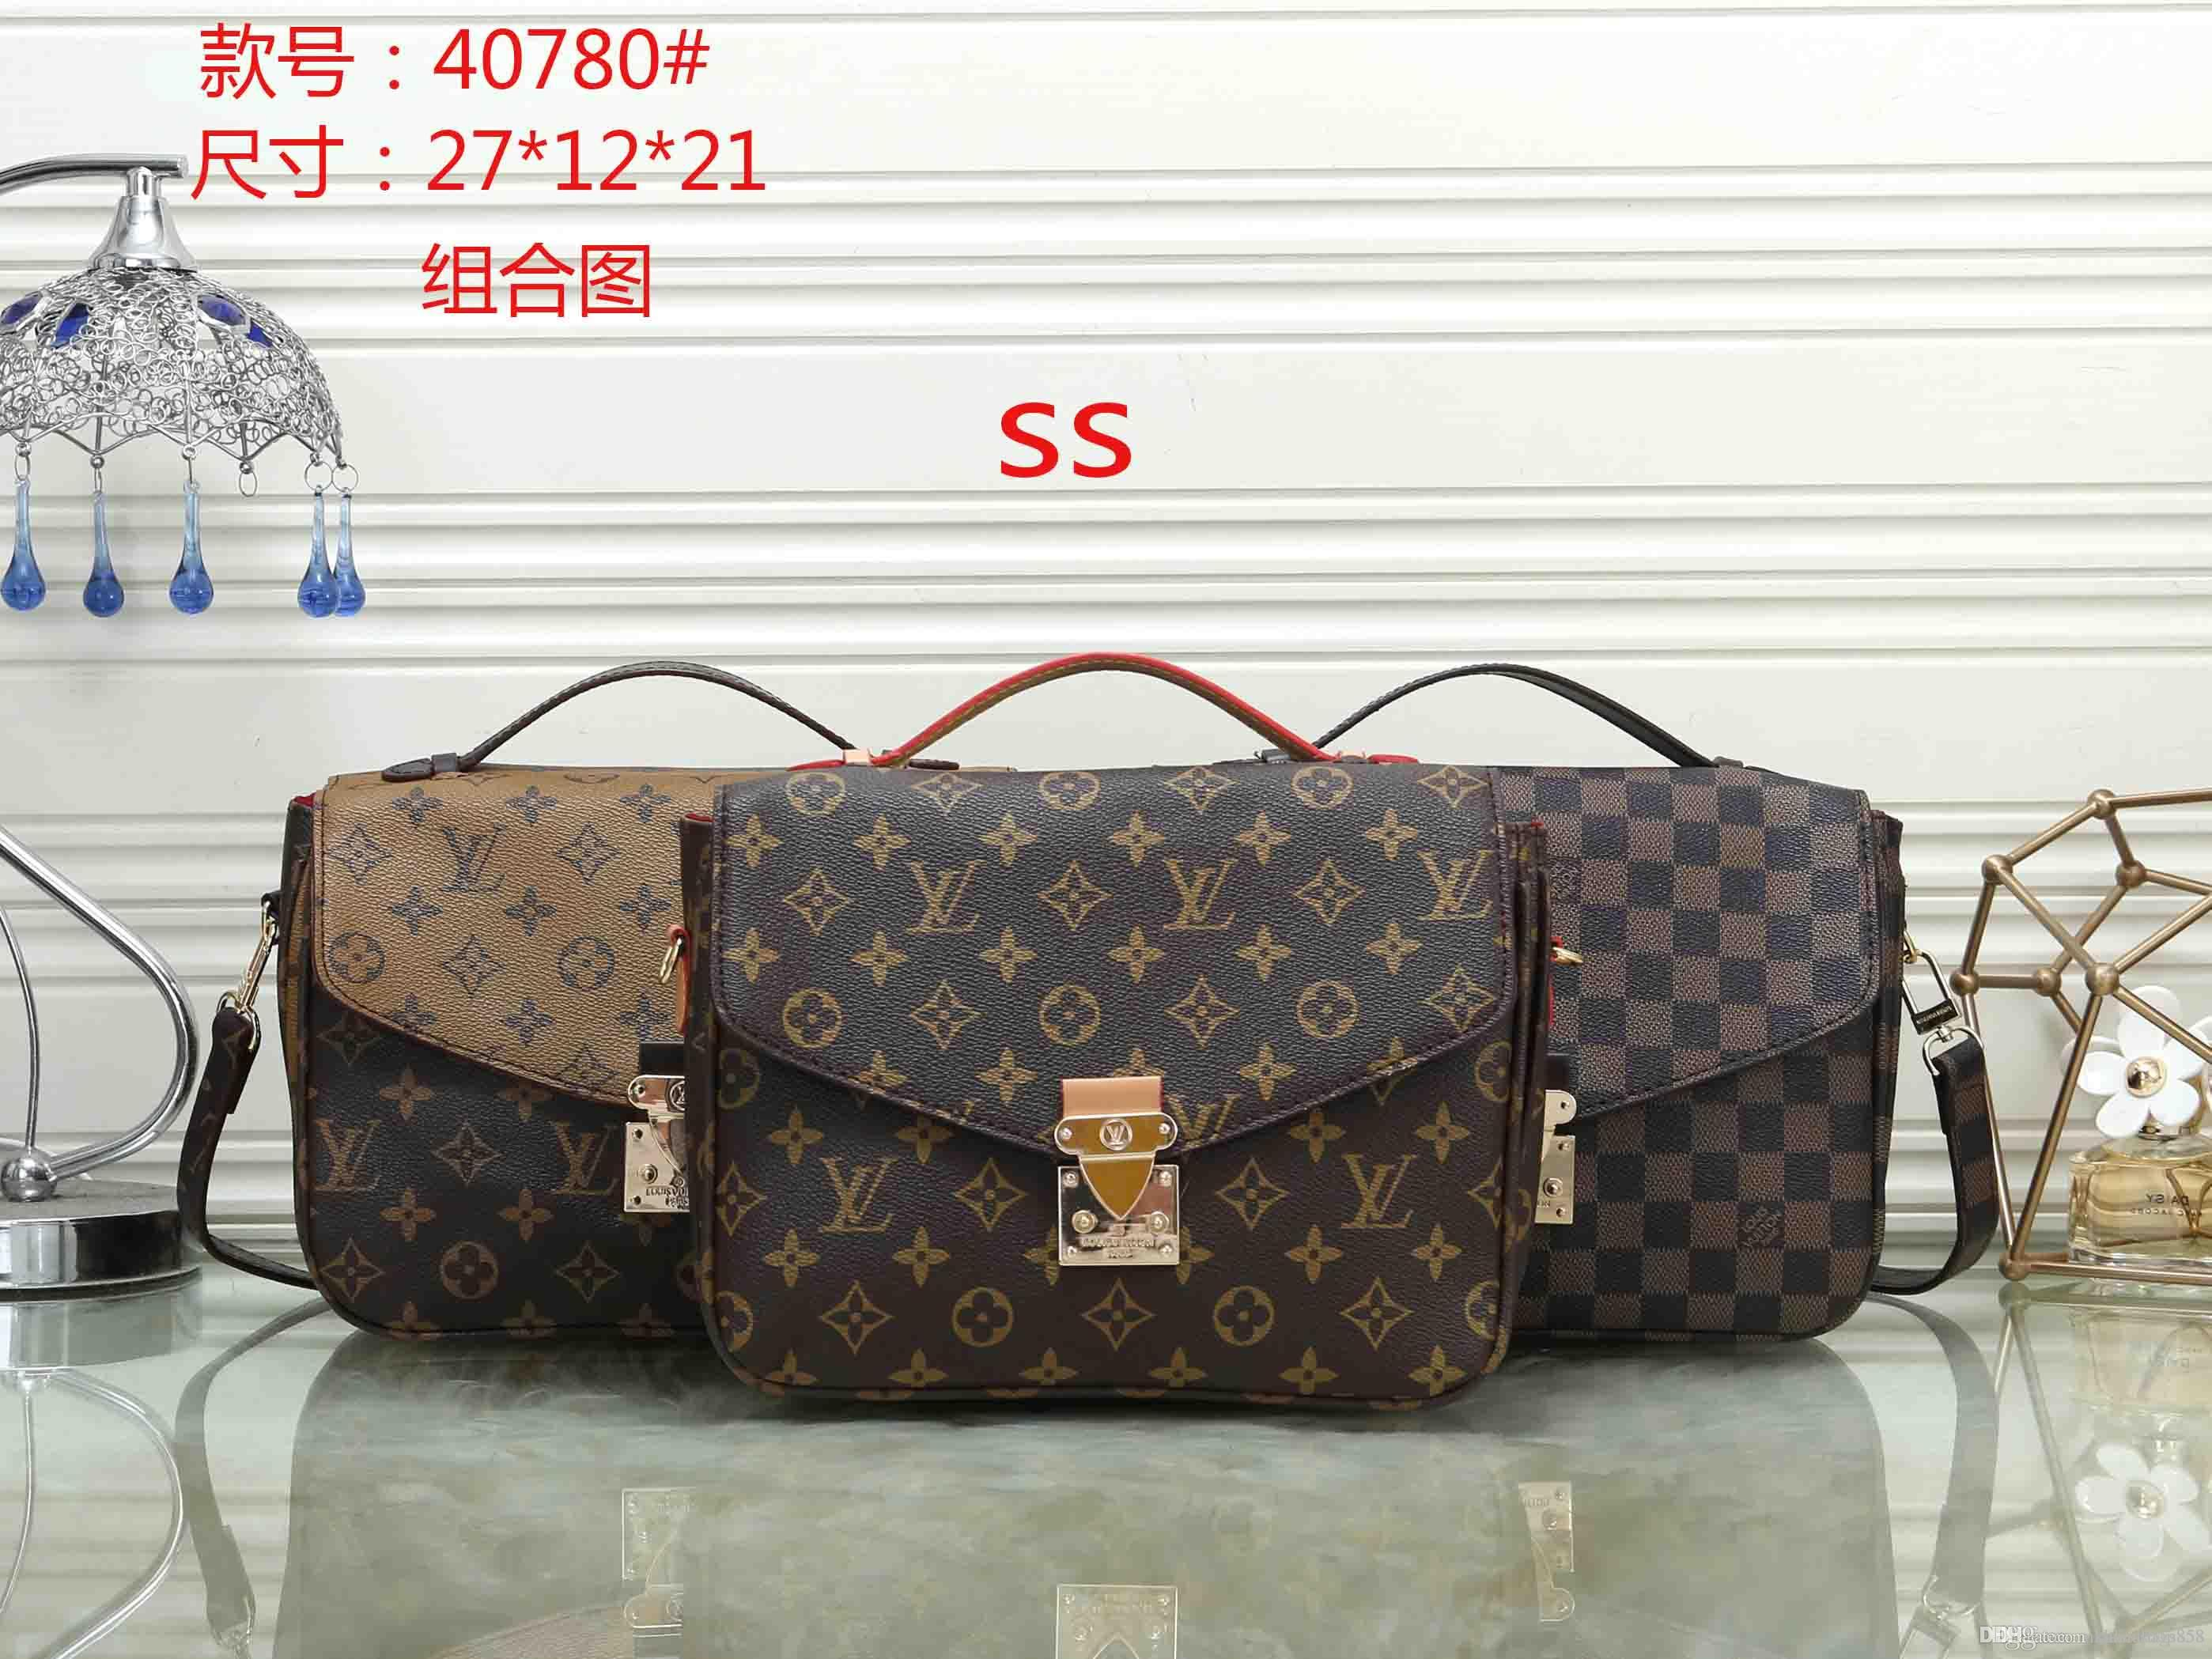 2137212ae5 MK 40780 SS NEW Styles Fashion Bags Ladies Handbags Designer Bags Women  Tote Bag Luxury Brands Bags Single Shoulder Bag Online with  28.42 Piece on  ...